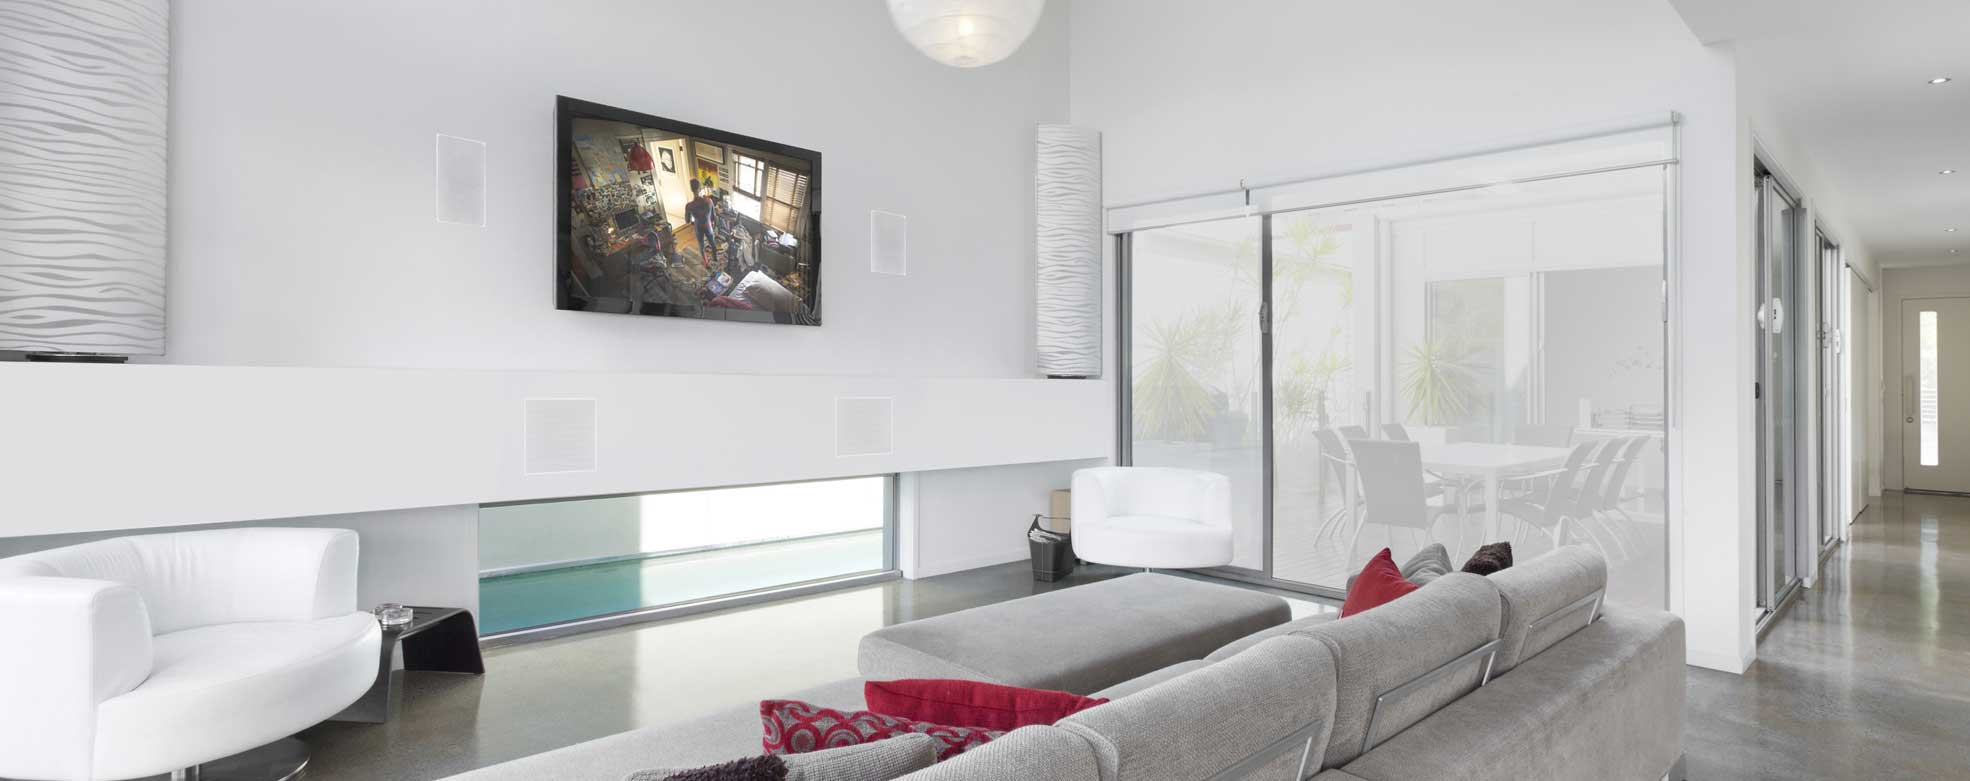 florida smart homes audio video installation